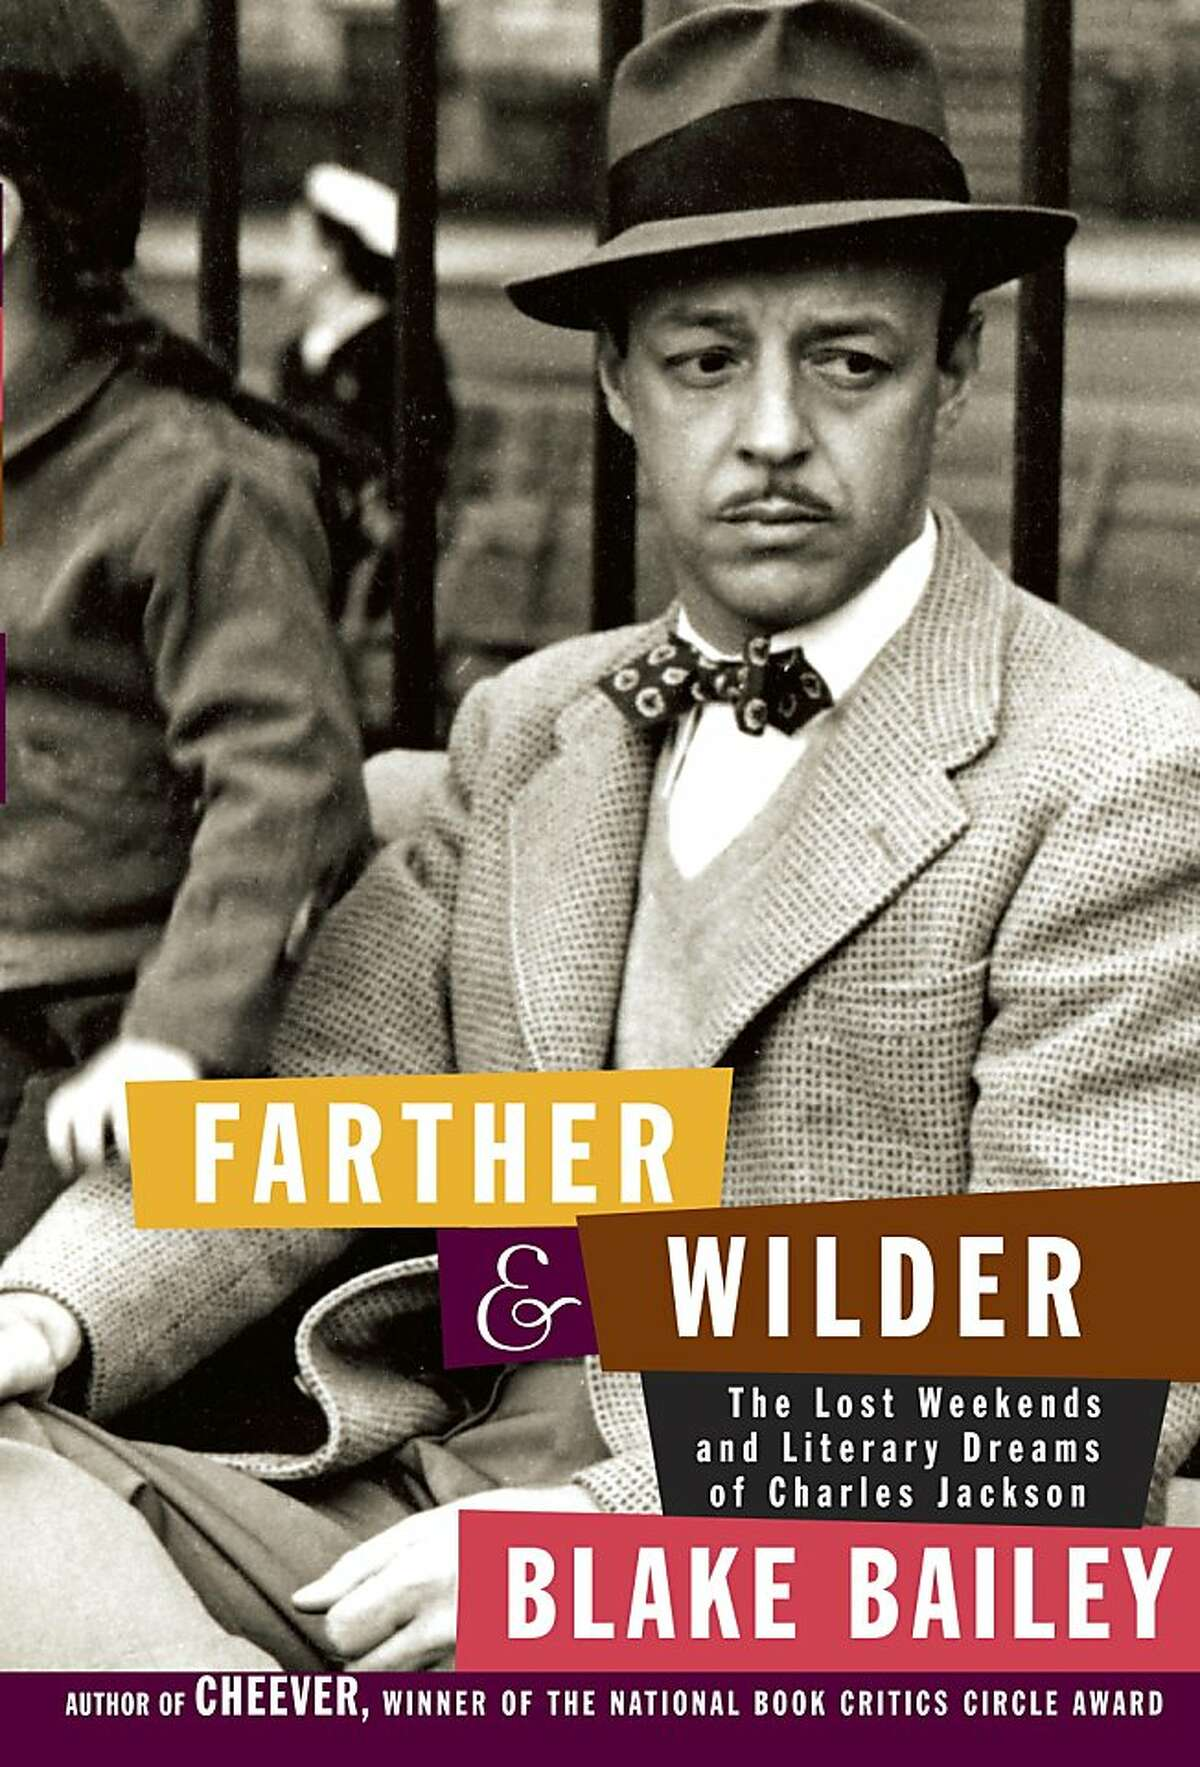 Farther and Wilder: The Lost Weekends and Literary Dreams of Charles Jackson, by Blake Bailey